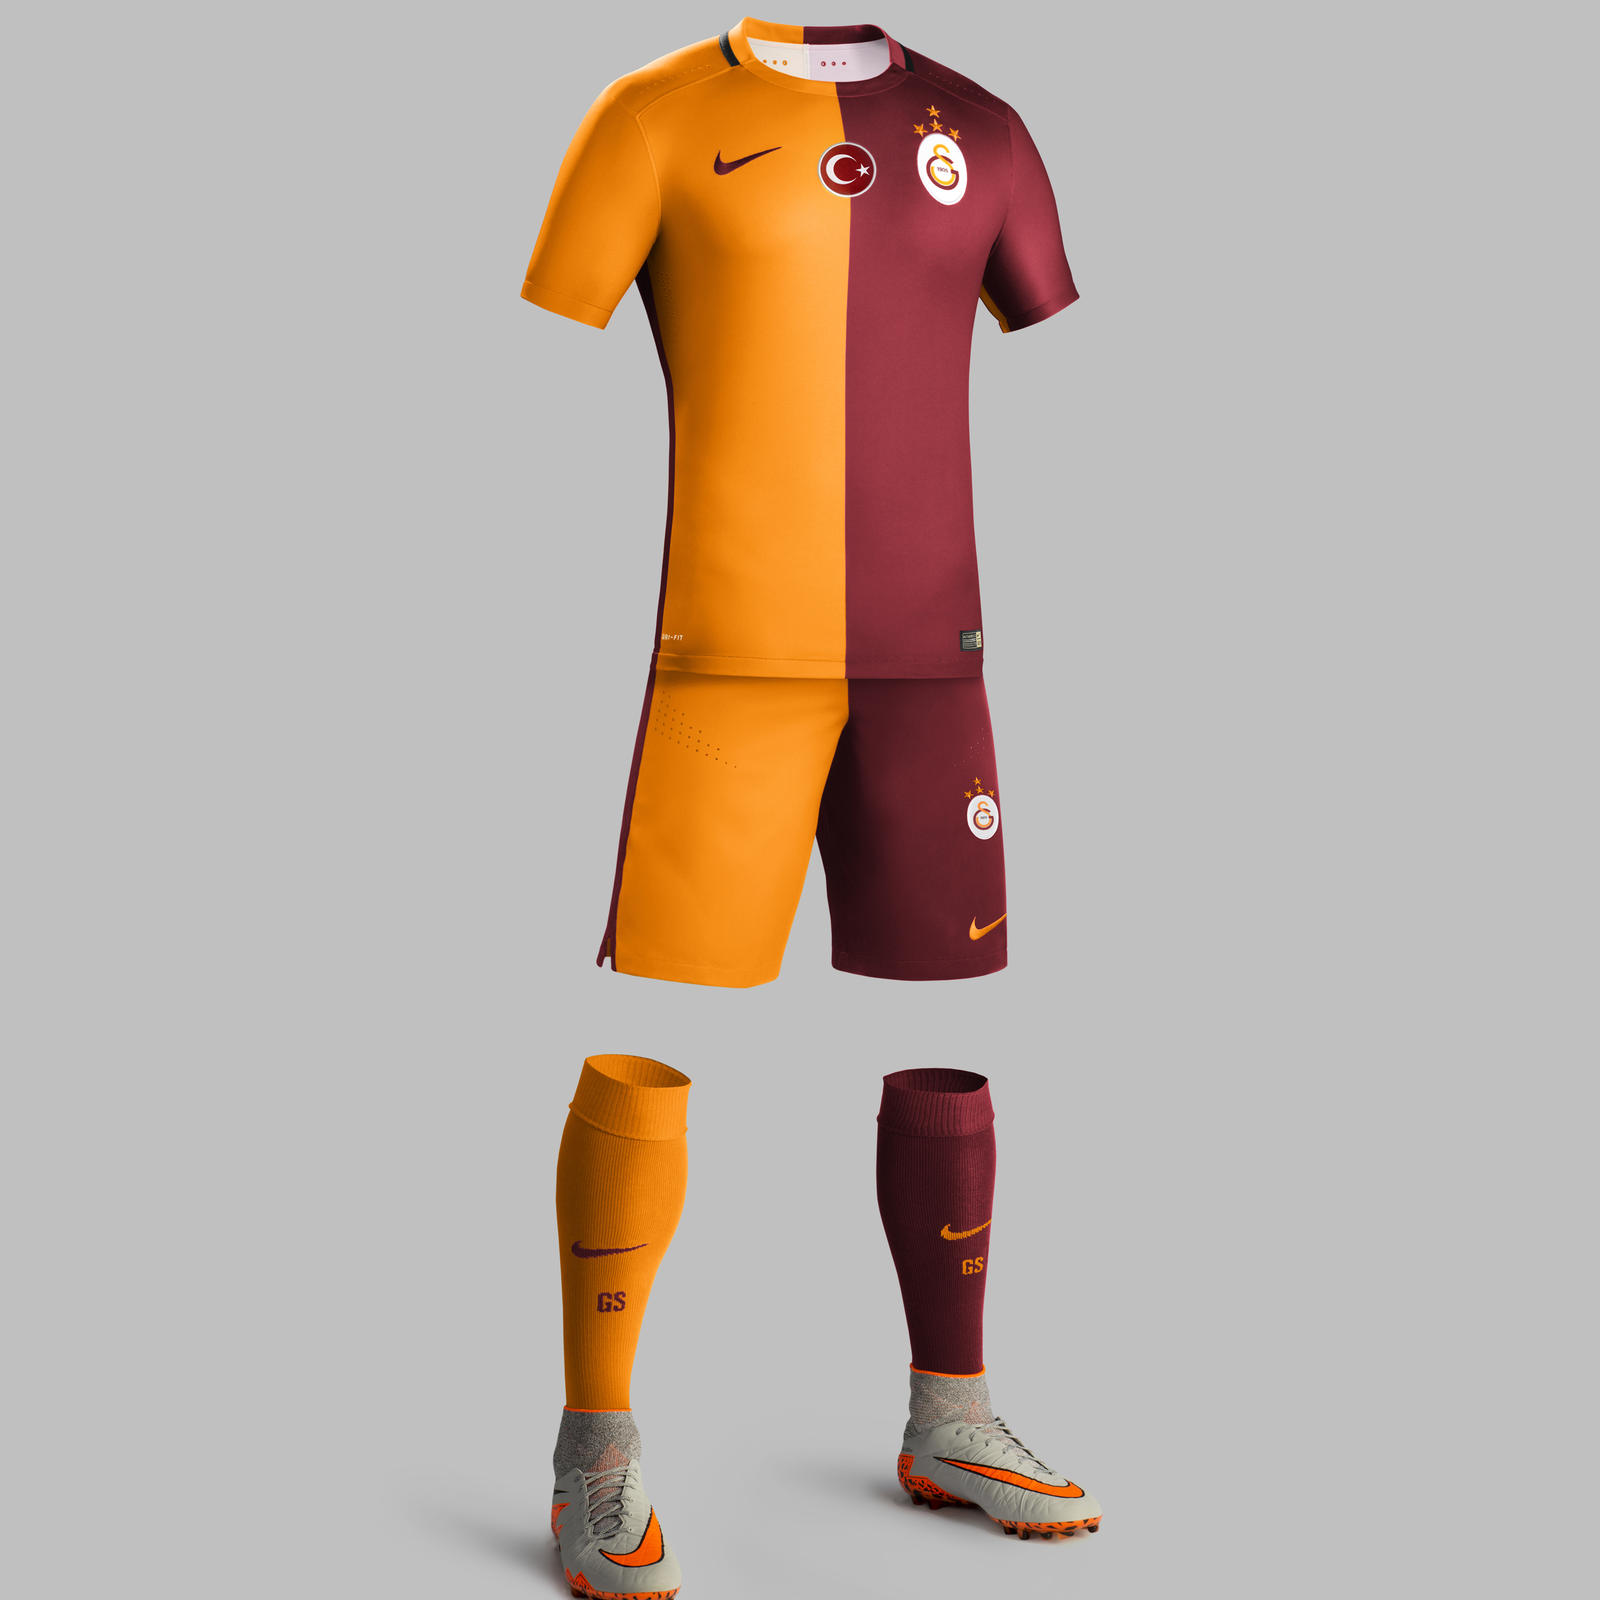 512x512 galatasaray home kit pictures free download - Share Image